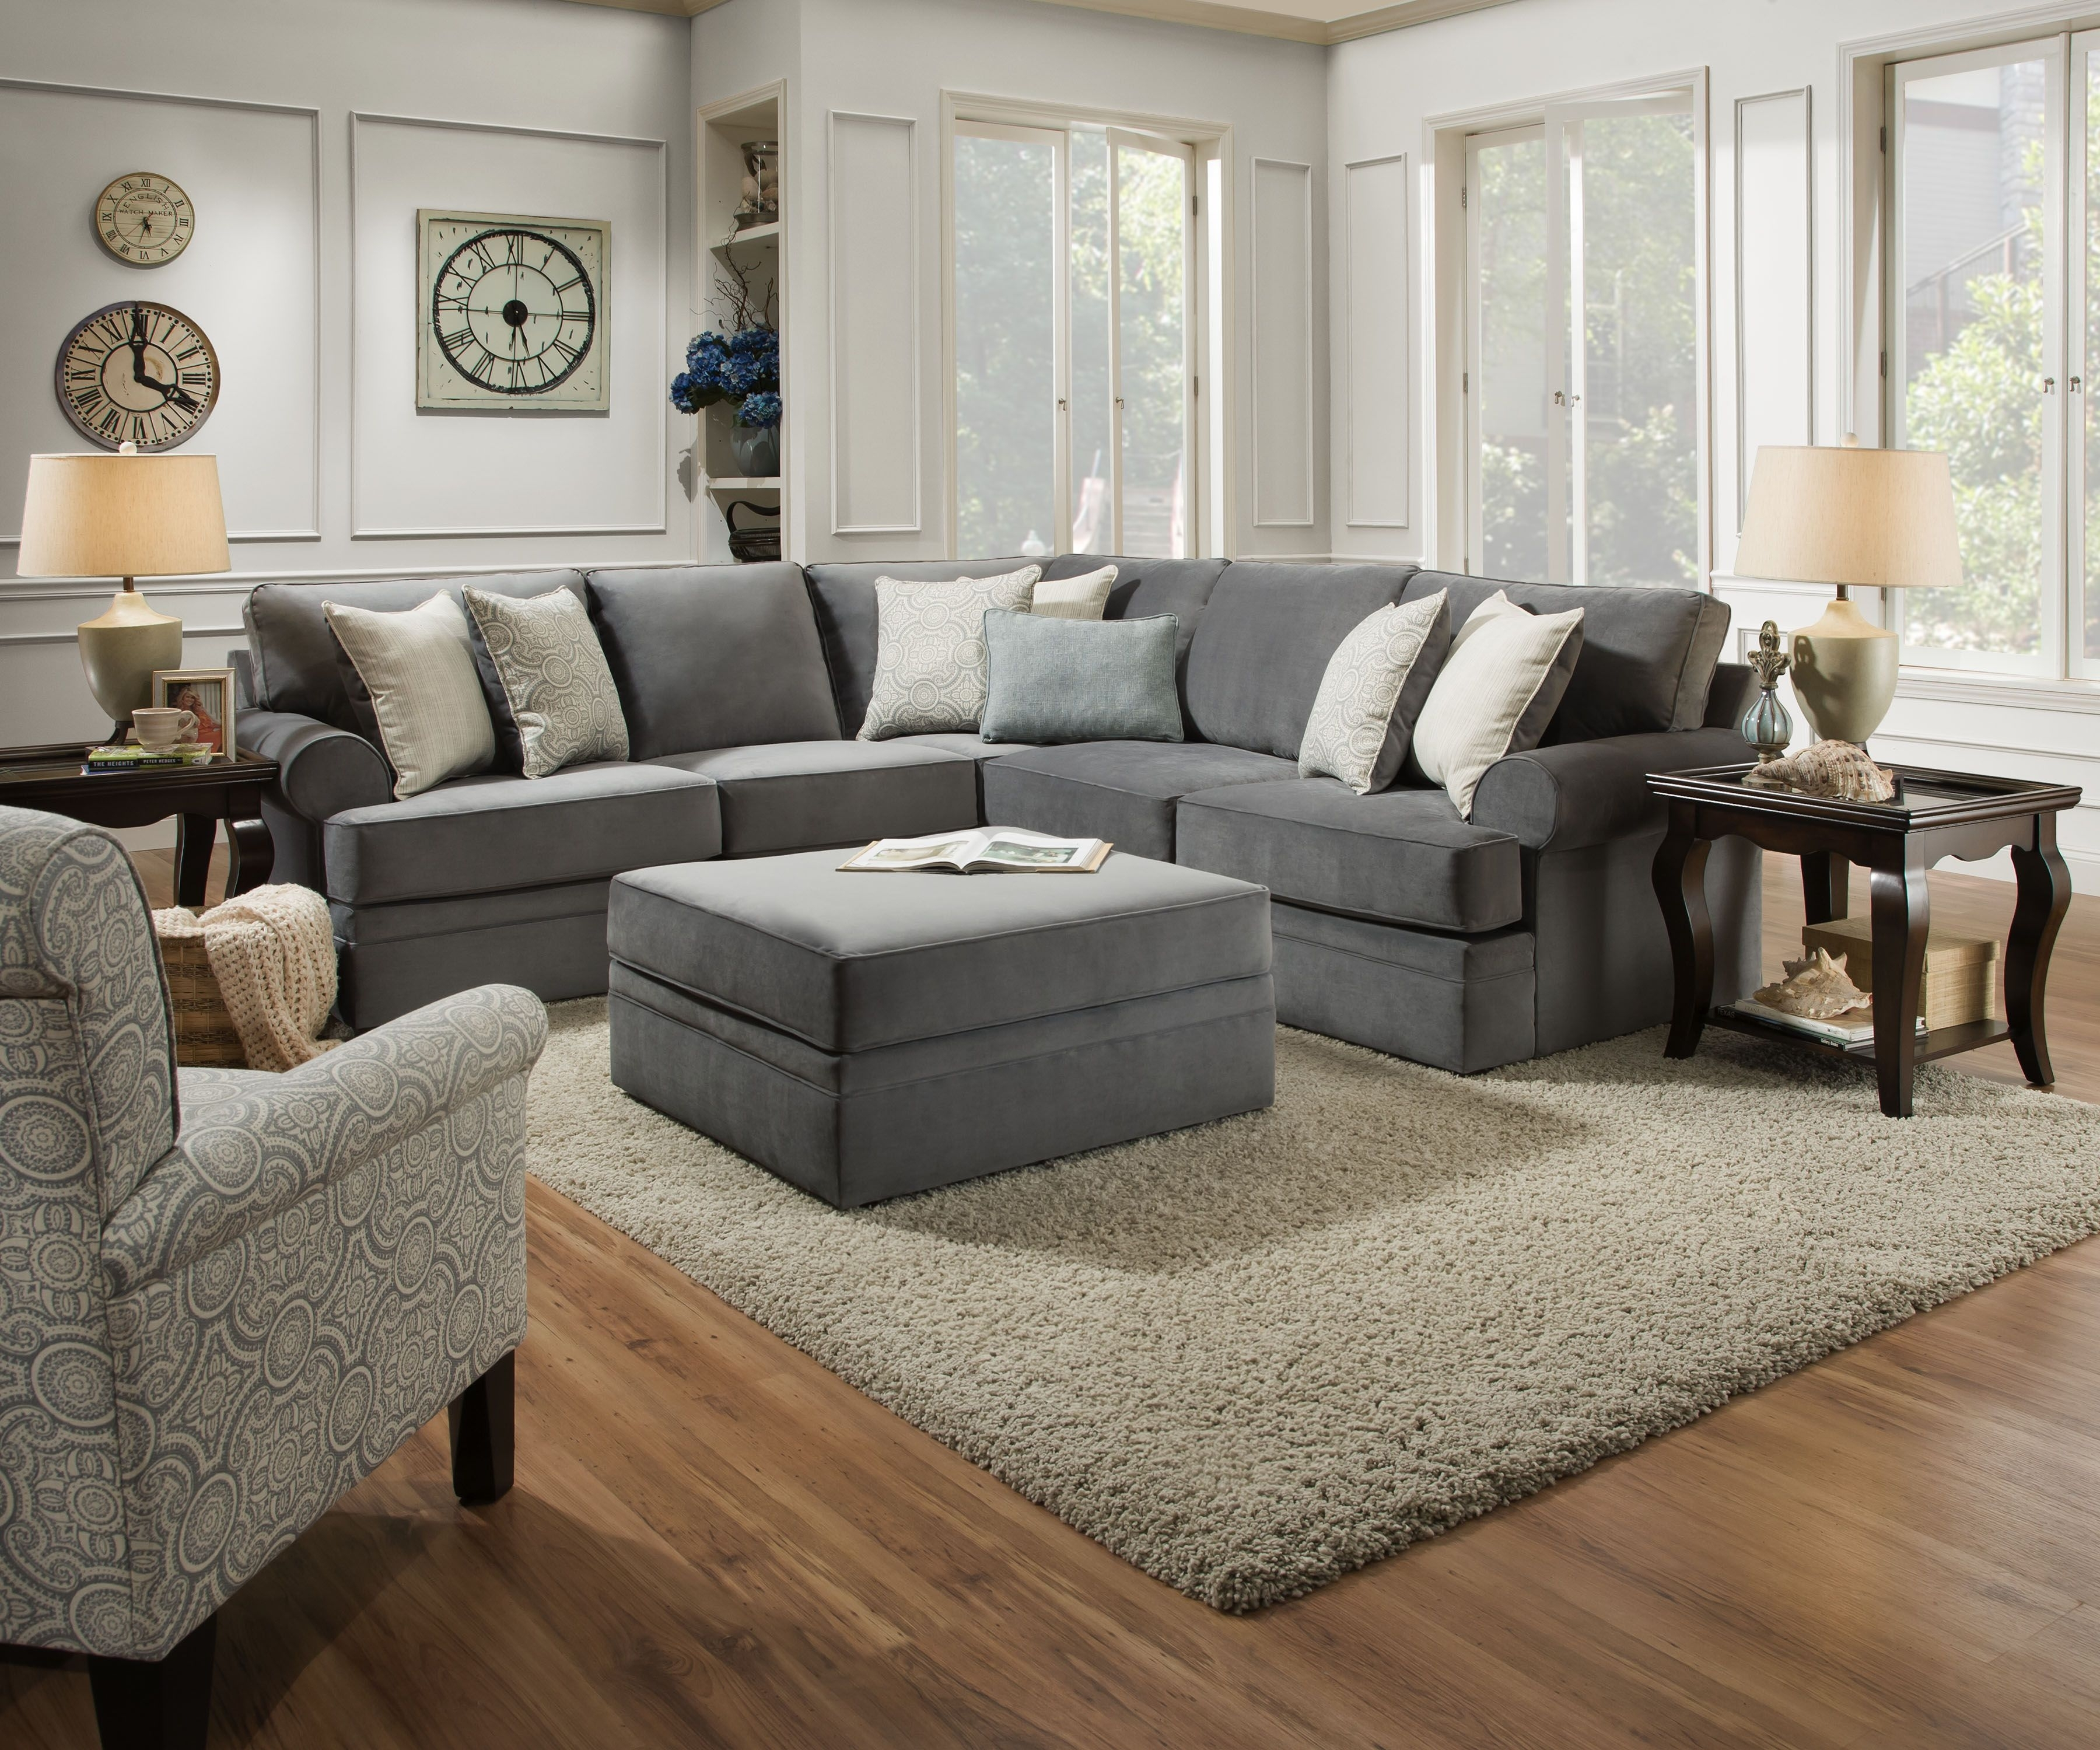 Laf Sofa Seven Seas | Baci Living Room within Avery 2 Piece Sectionals With Raf Armless Chaise (Image 17 of 30)